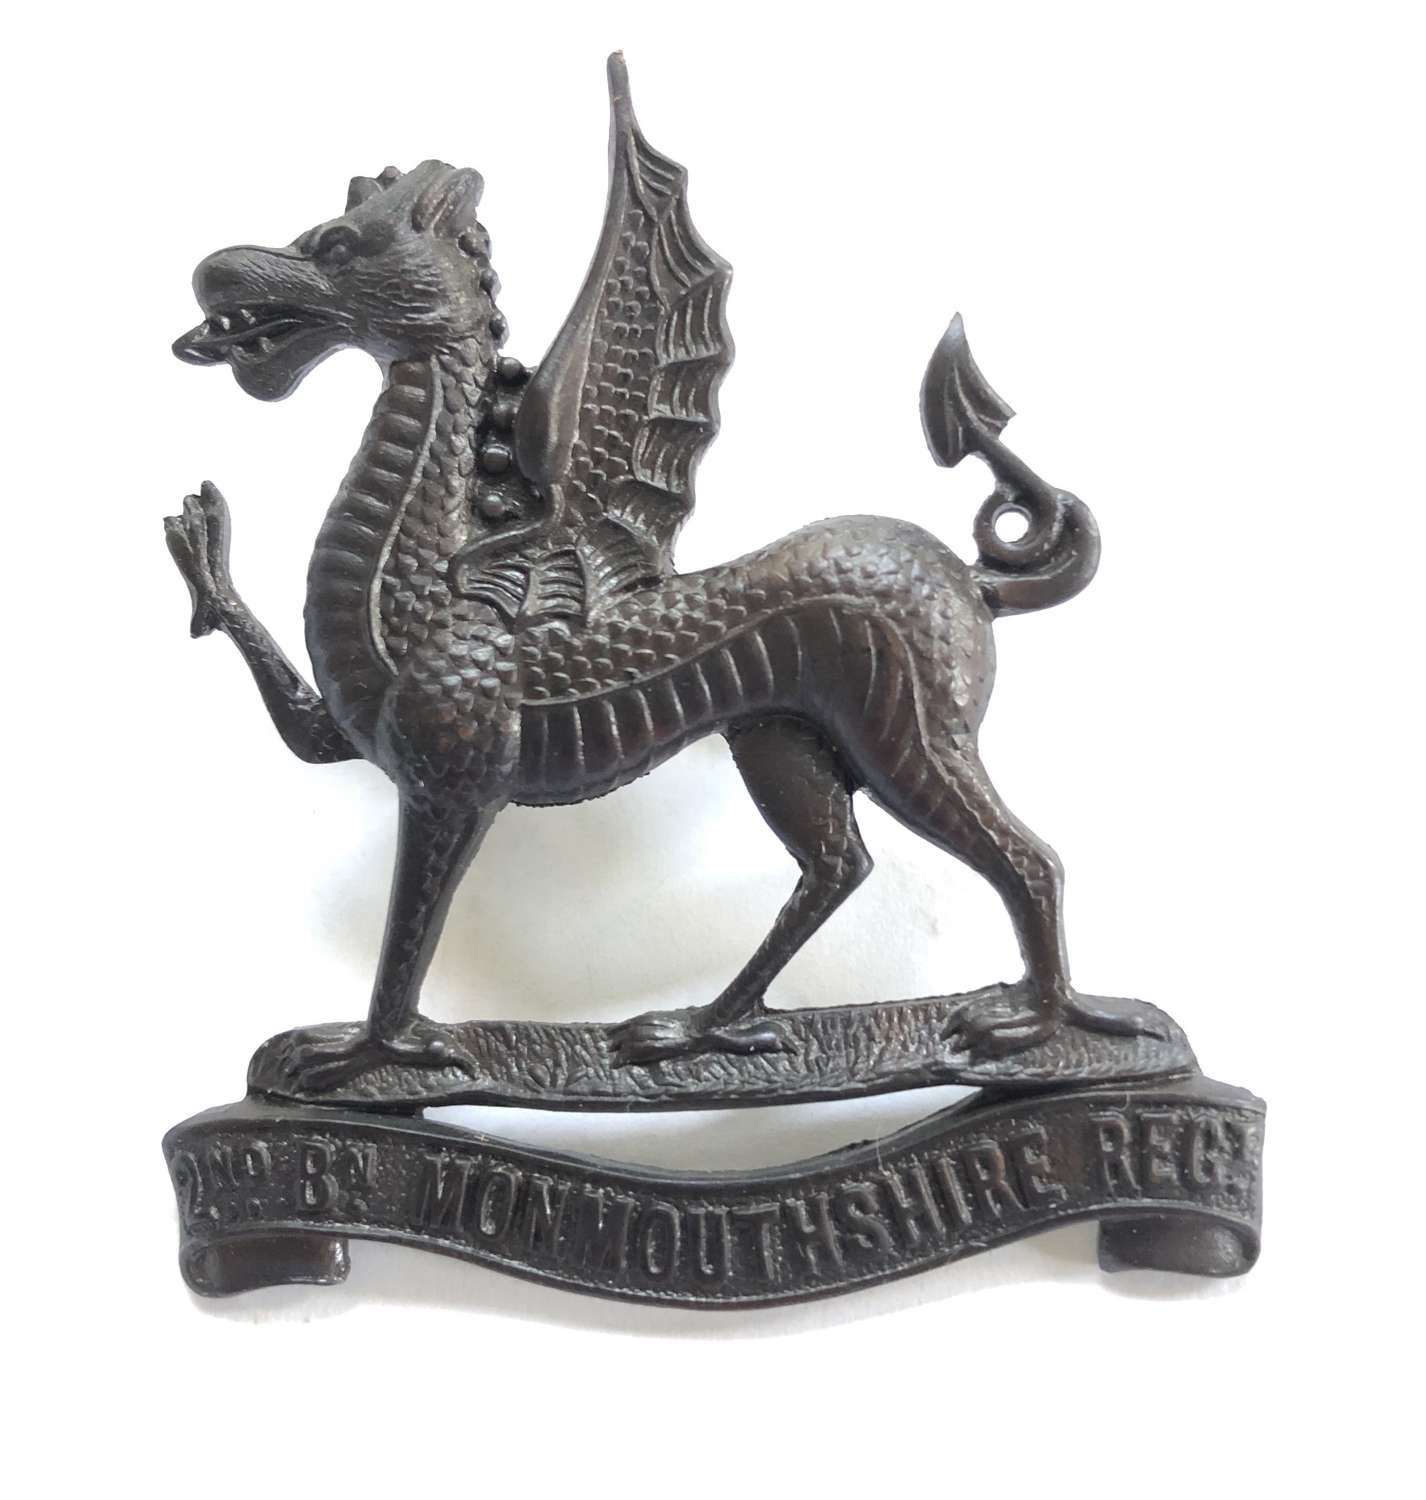 Welsh. 2nd Bn. Monmouthshire Regiment post 1908 OSD bronze cap badge